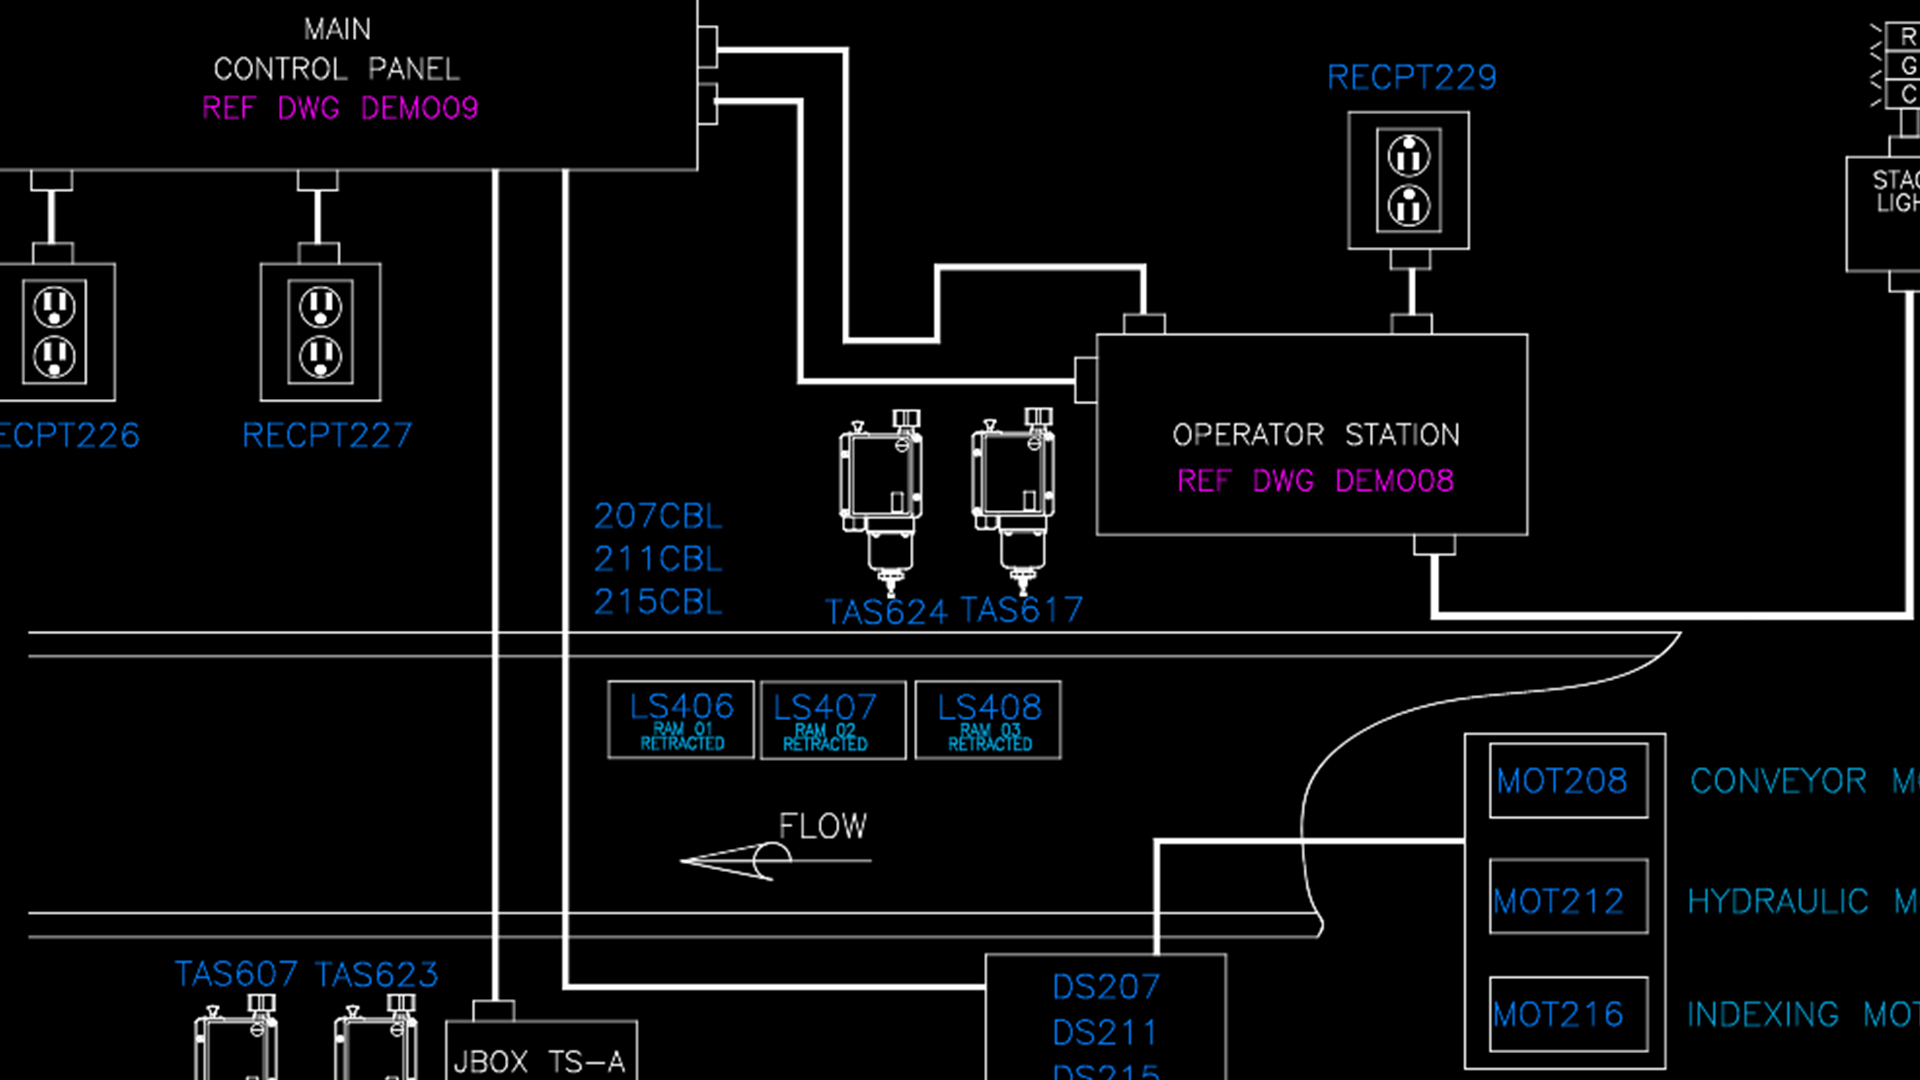 Pvcirtual Electrical Engineering Autocad Electrical 3d